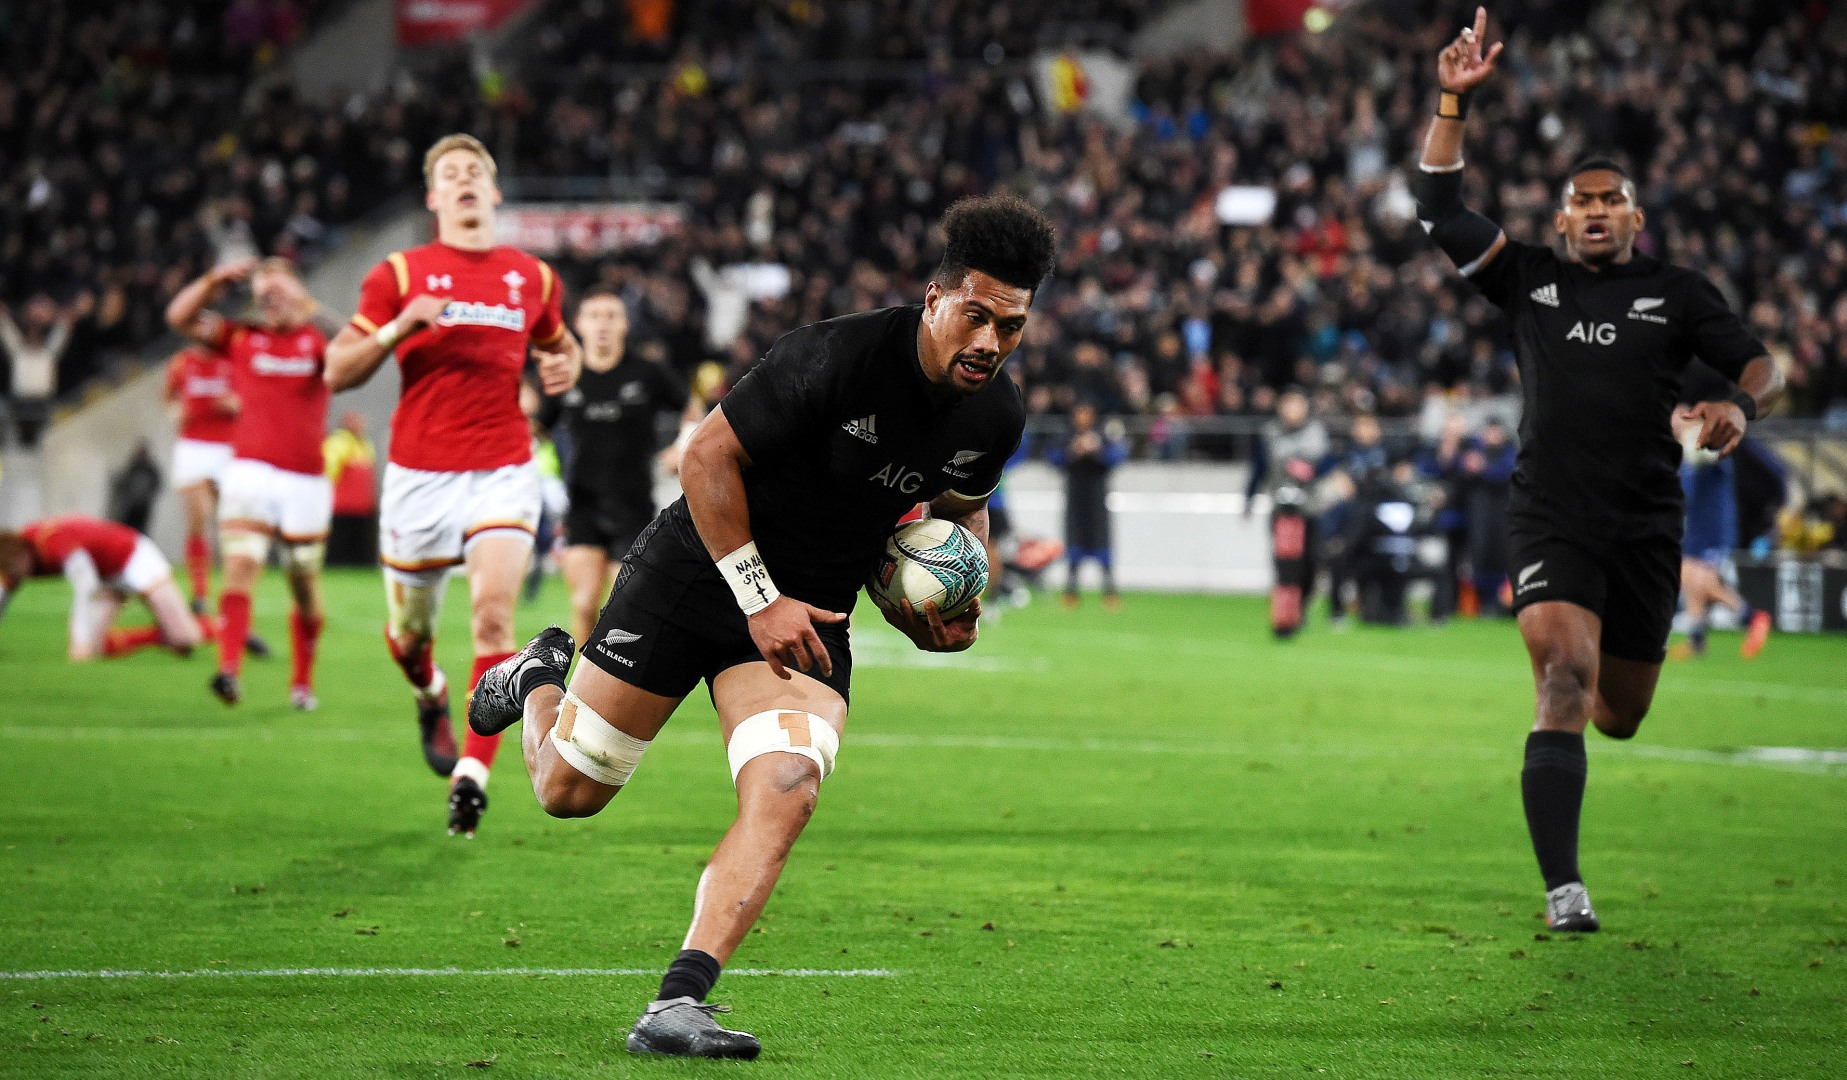 Savea brothers line up together in round four of the Rugby Championship